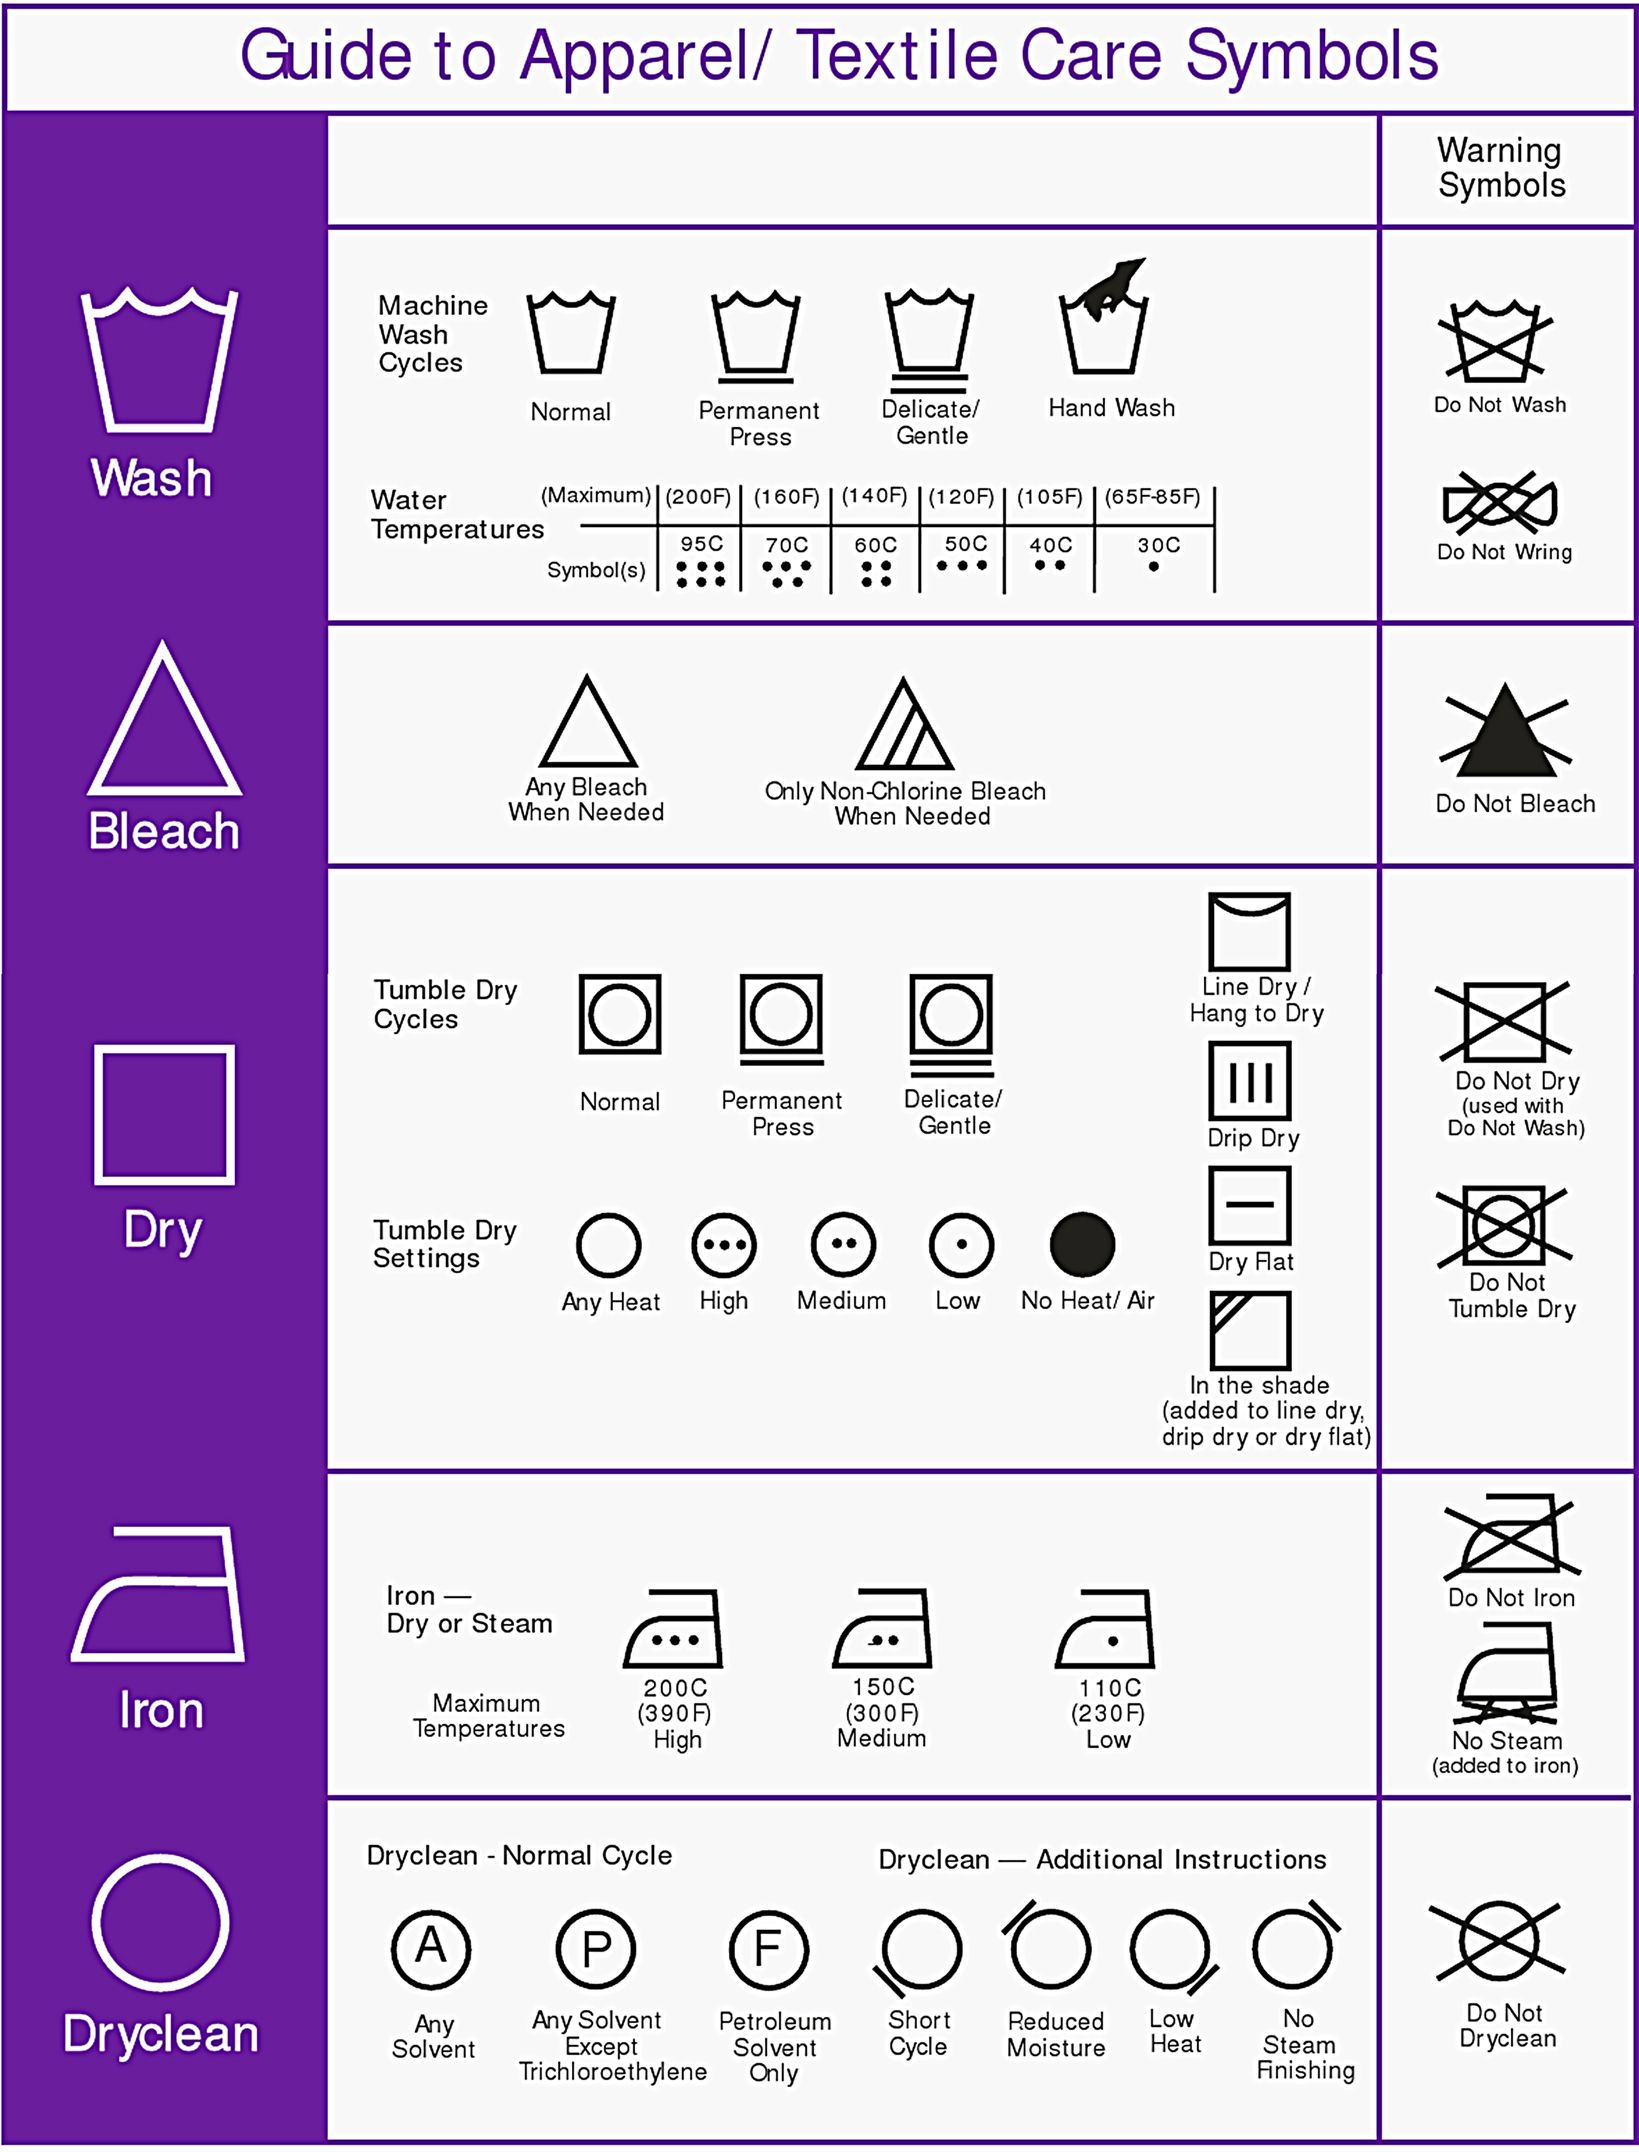 Cracking The Code Learn The Laundry Care Symbols In 5